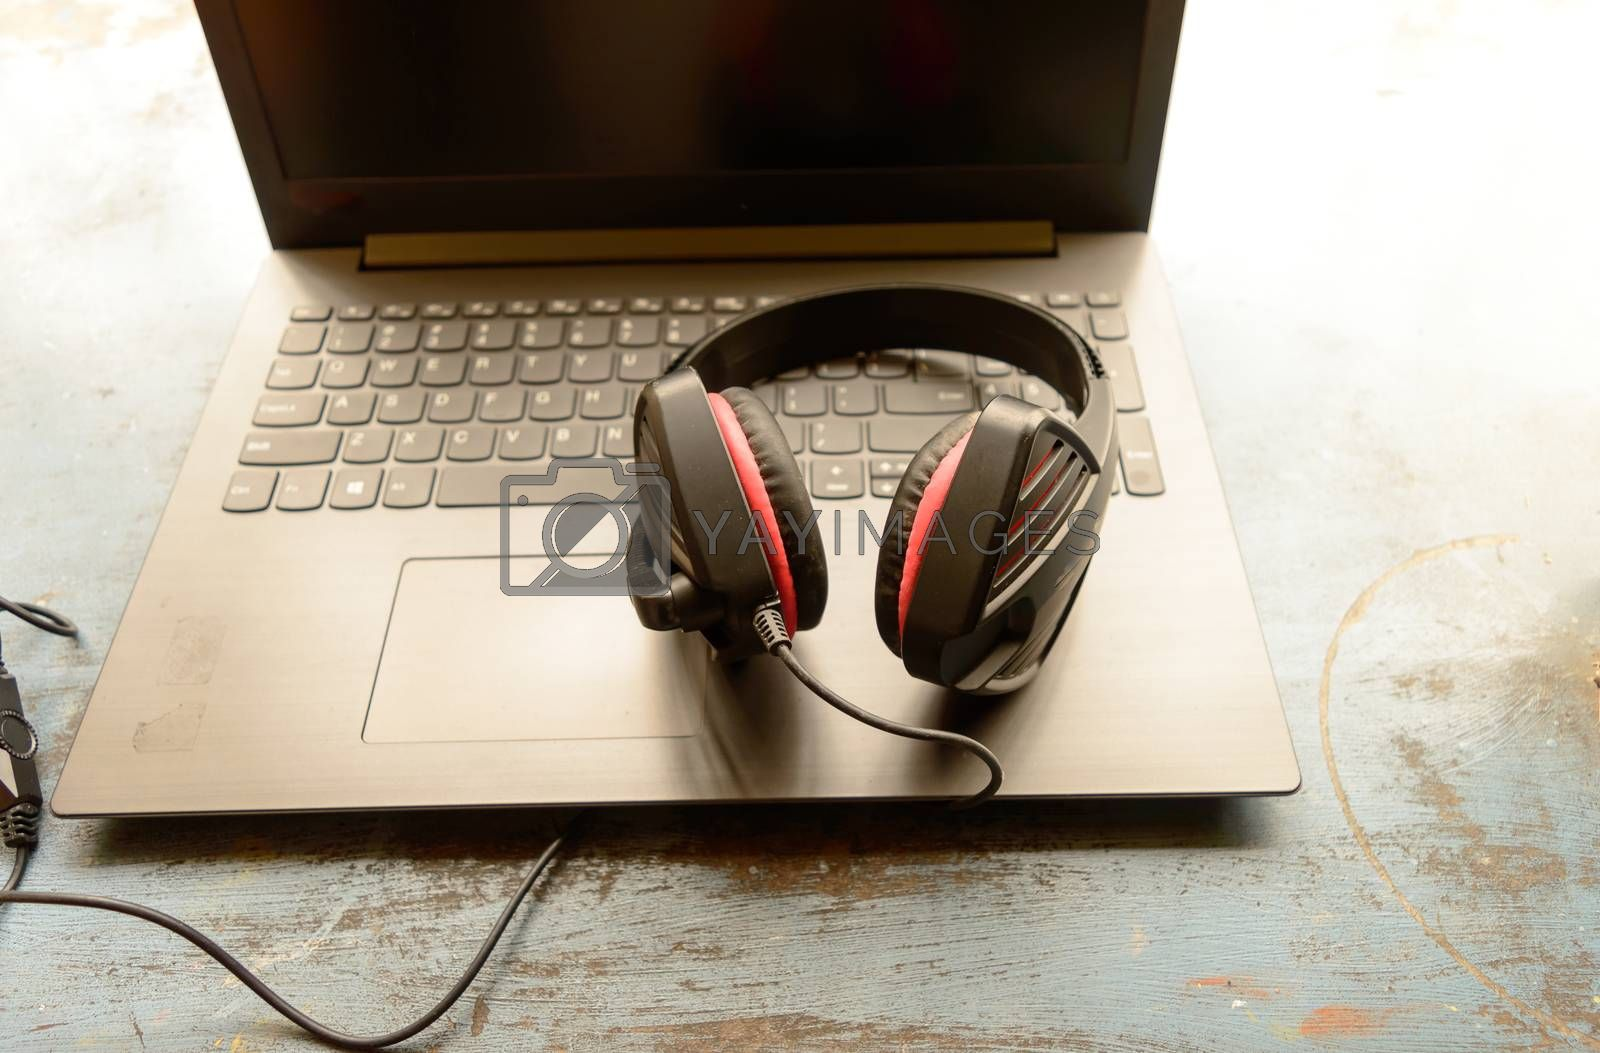 Portable over-ear Binaural Sound USB Headset with Microphone Noise Cancelling and Ultrasonic Volume Adjuster Headphone for Computer, Skype placed on laptop on morning sunlight. Music Background.